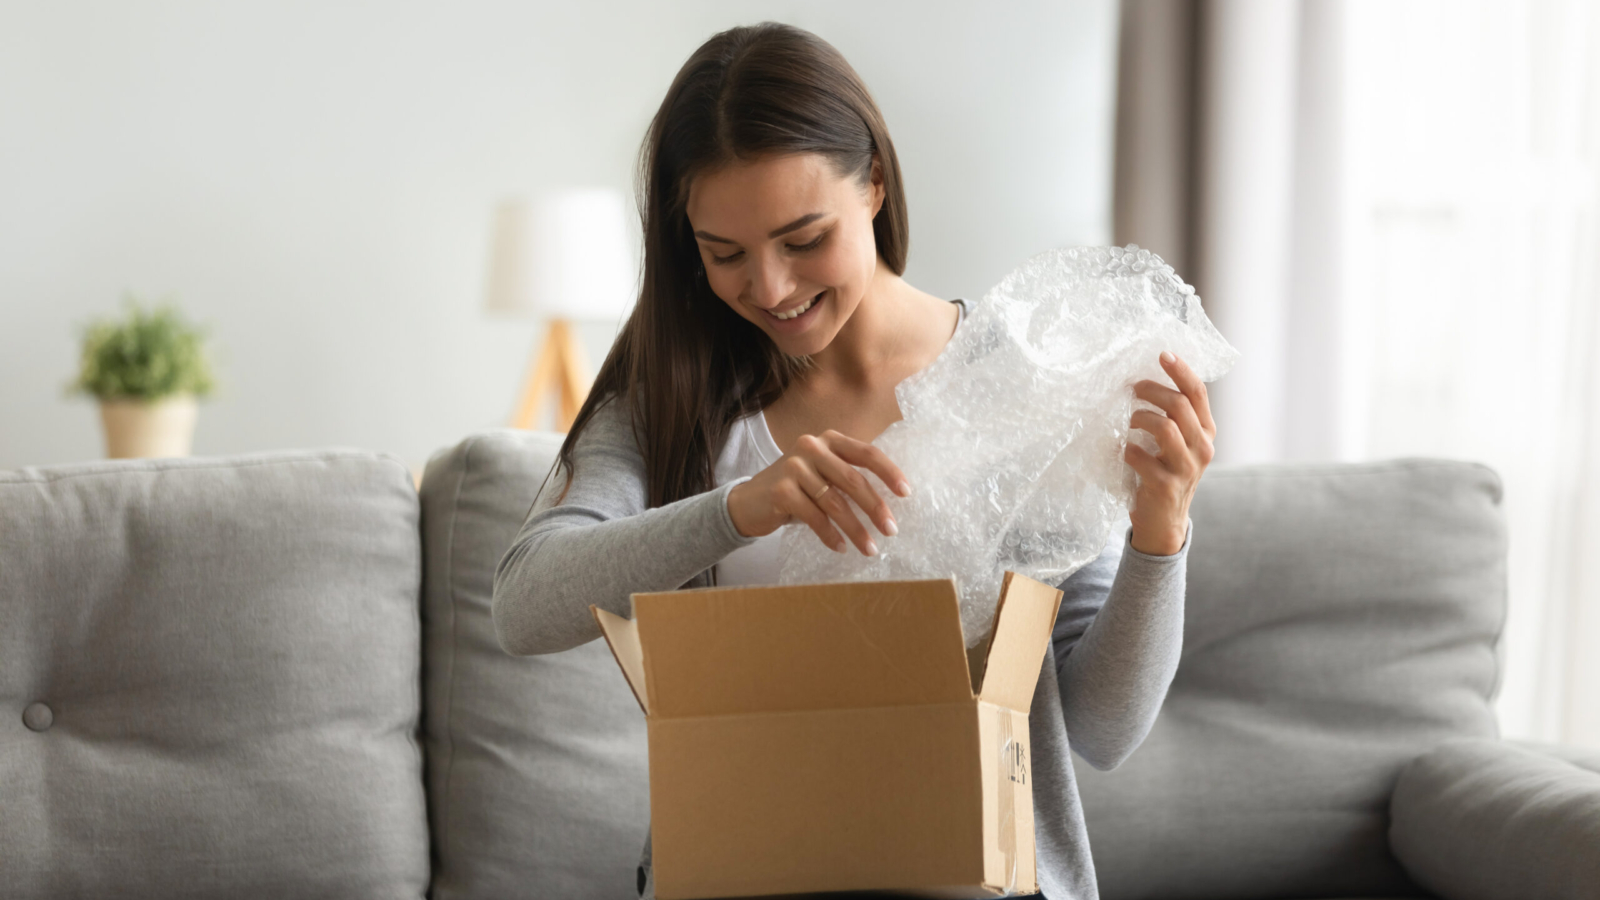 Happy young woman open cardboard box satisfied with purchase online shop order sit on sofa at home, smiling lady customer receive unpack parcel look inside, postal shipping courier service concept